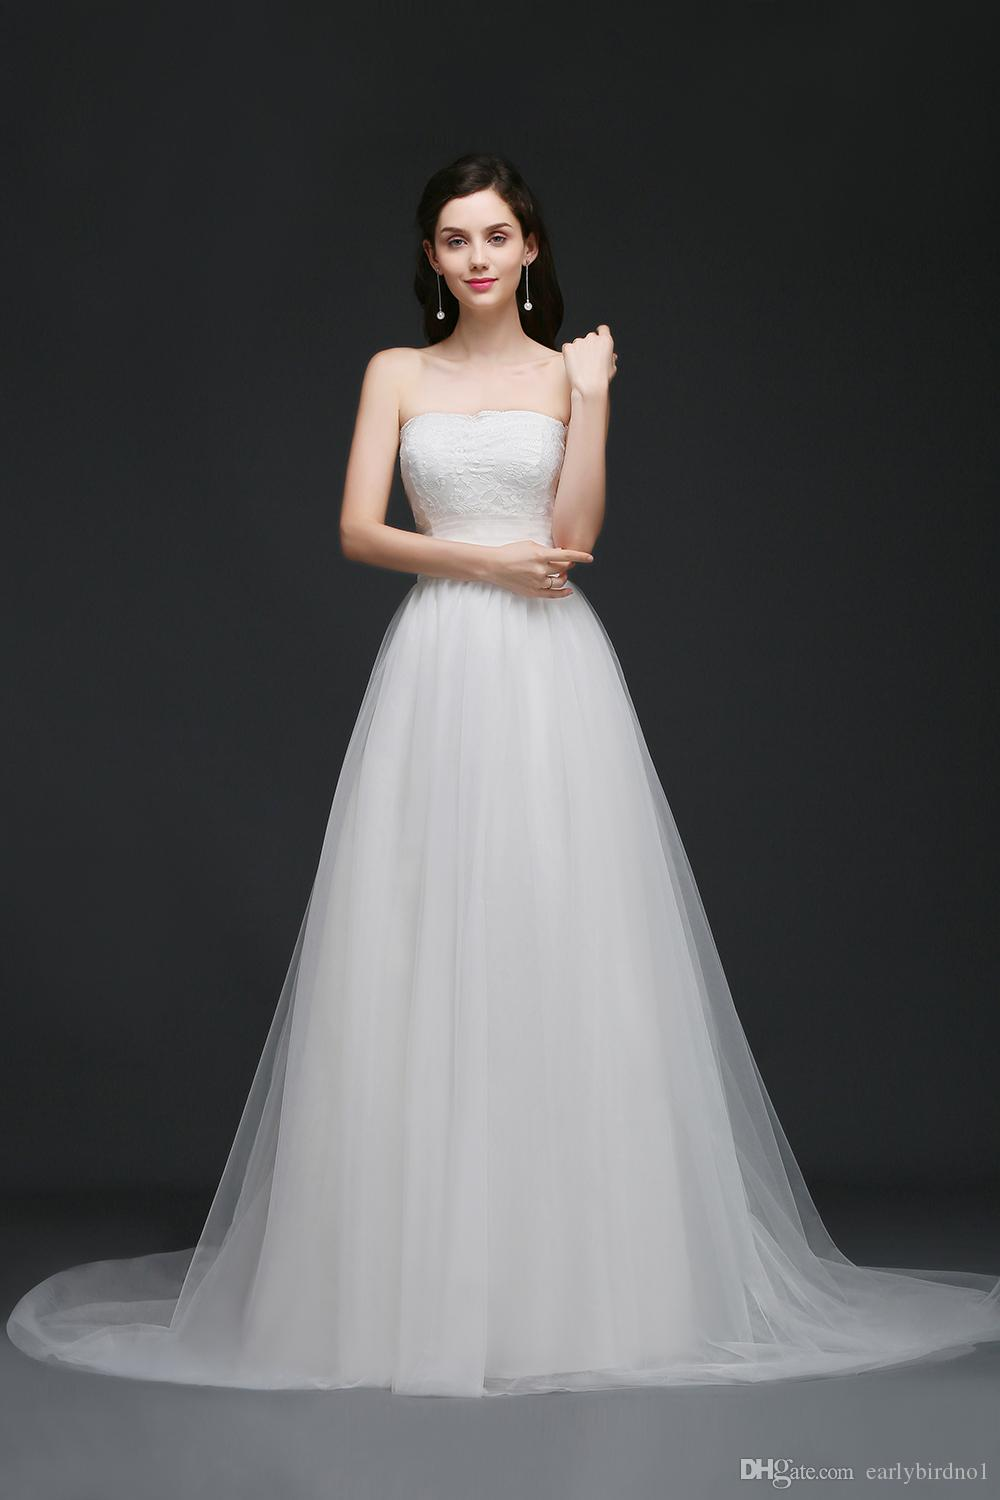 New Elegant Simple Strapless Garden Wedding Dresses Lace Top Soft Tulle Beach Wedding Gowns Summer Cheap Wedding Gowns Robe CPS762